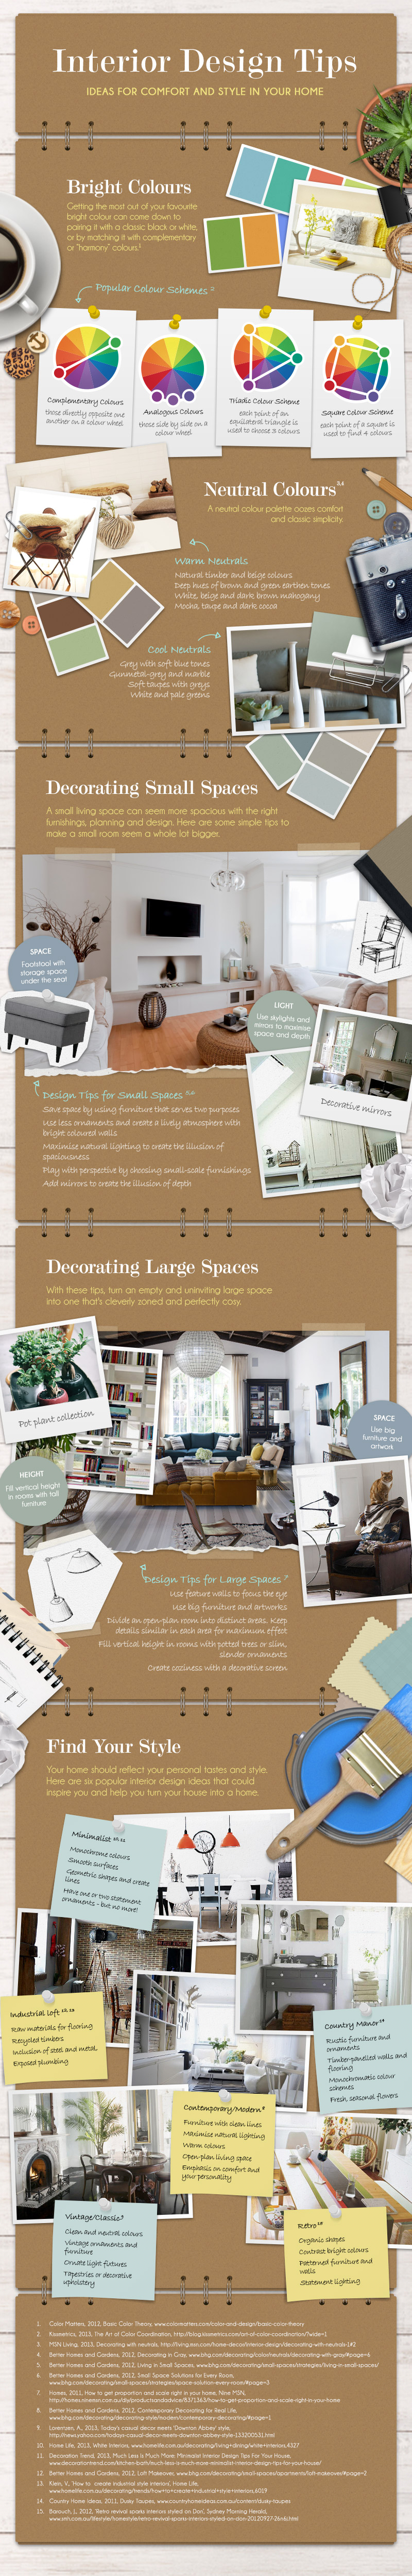 Education and training to become an interior designer for Interior design education needed